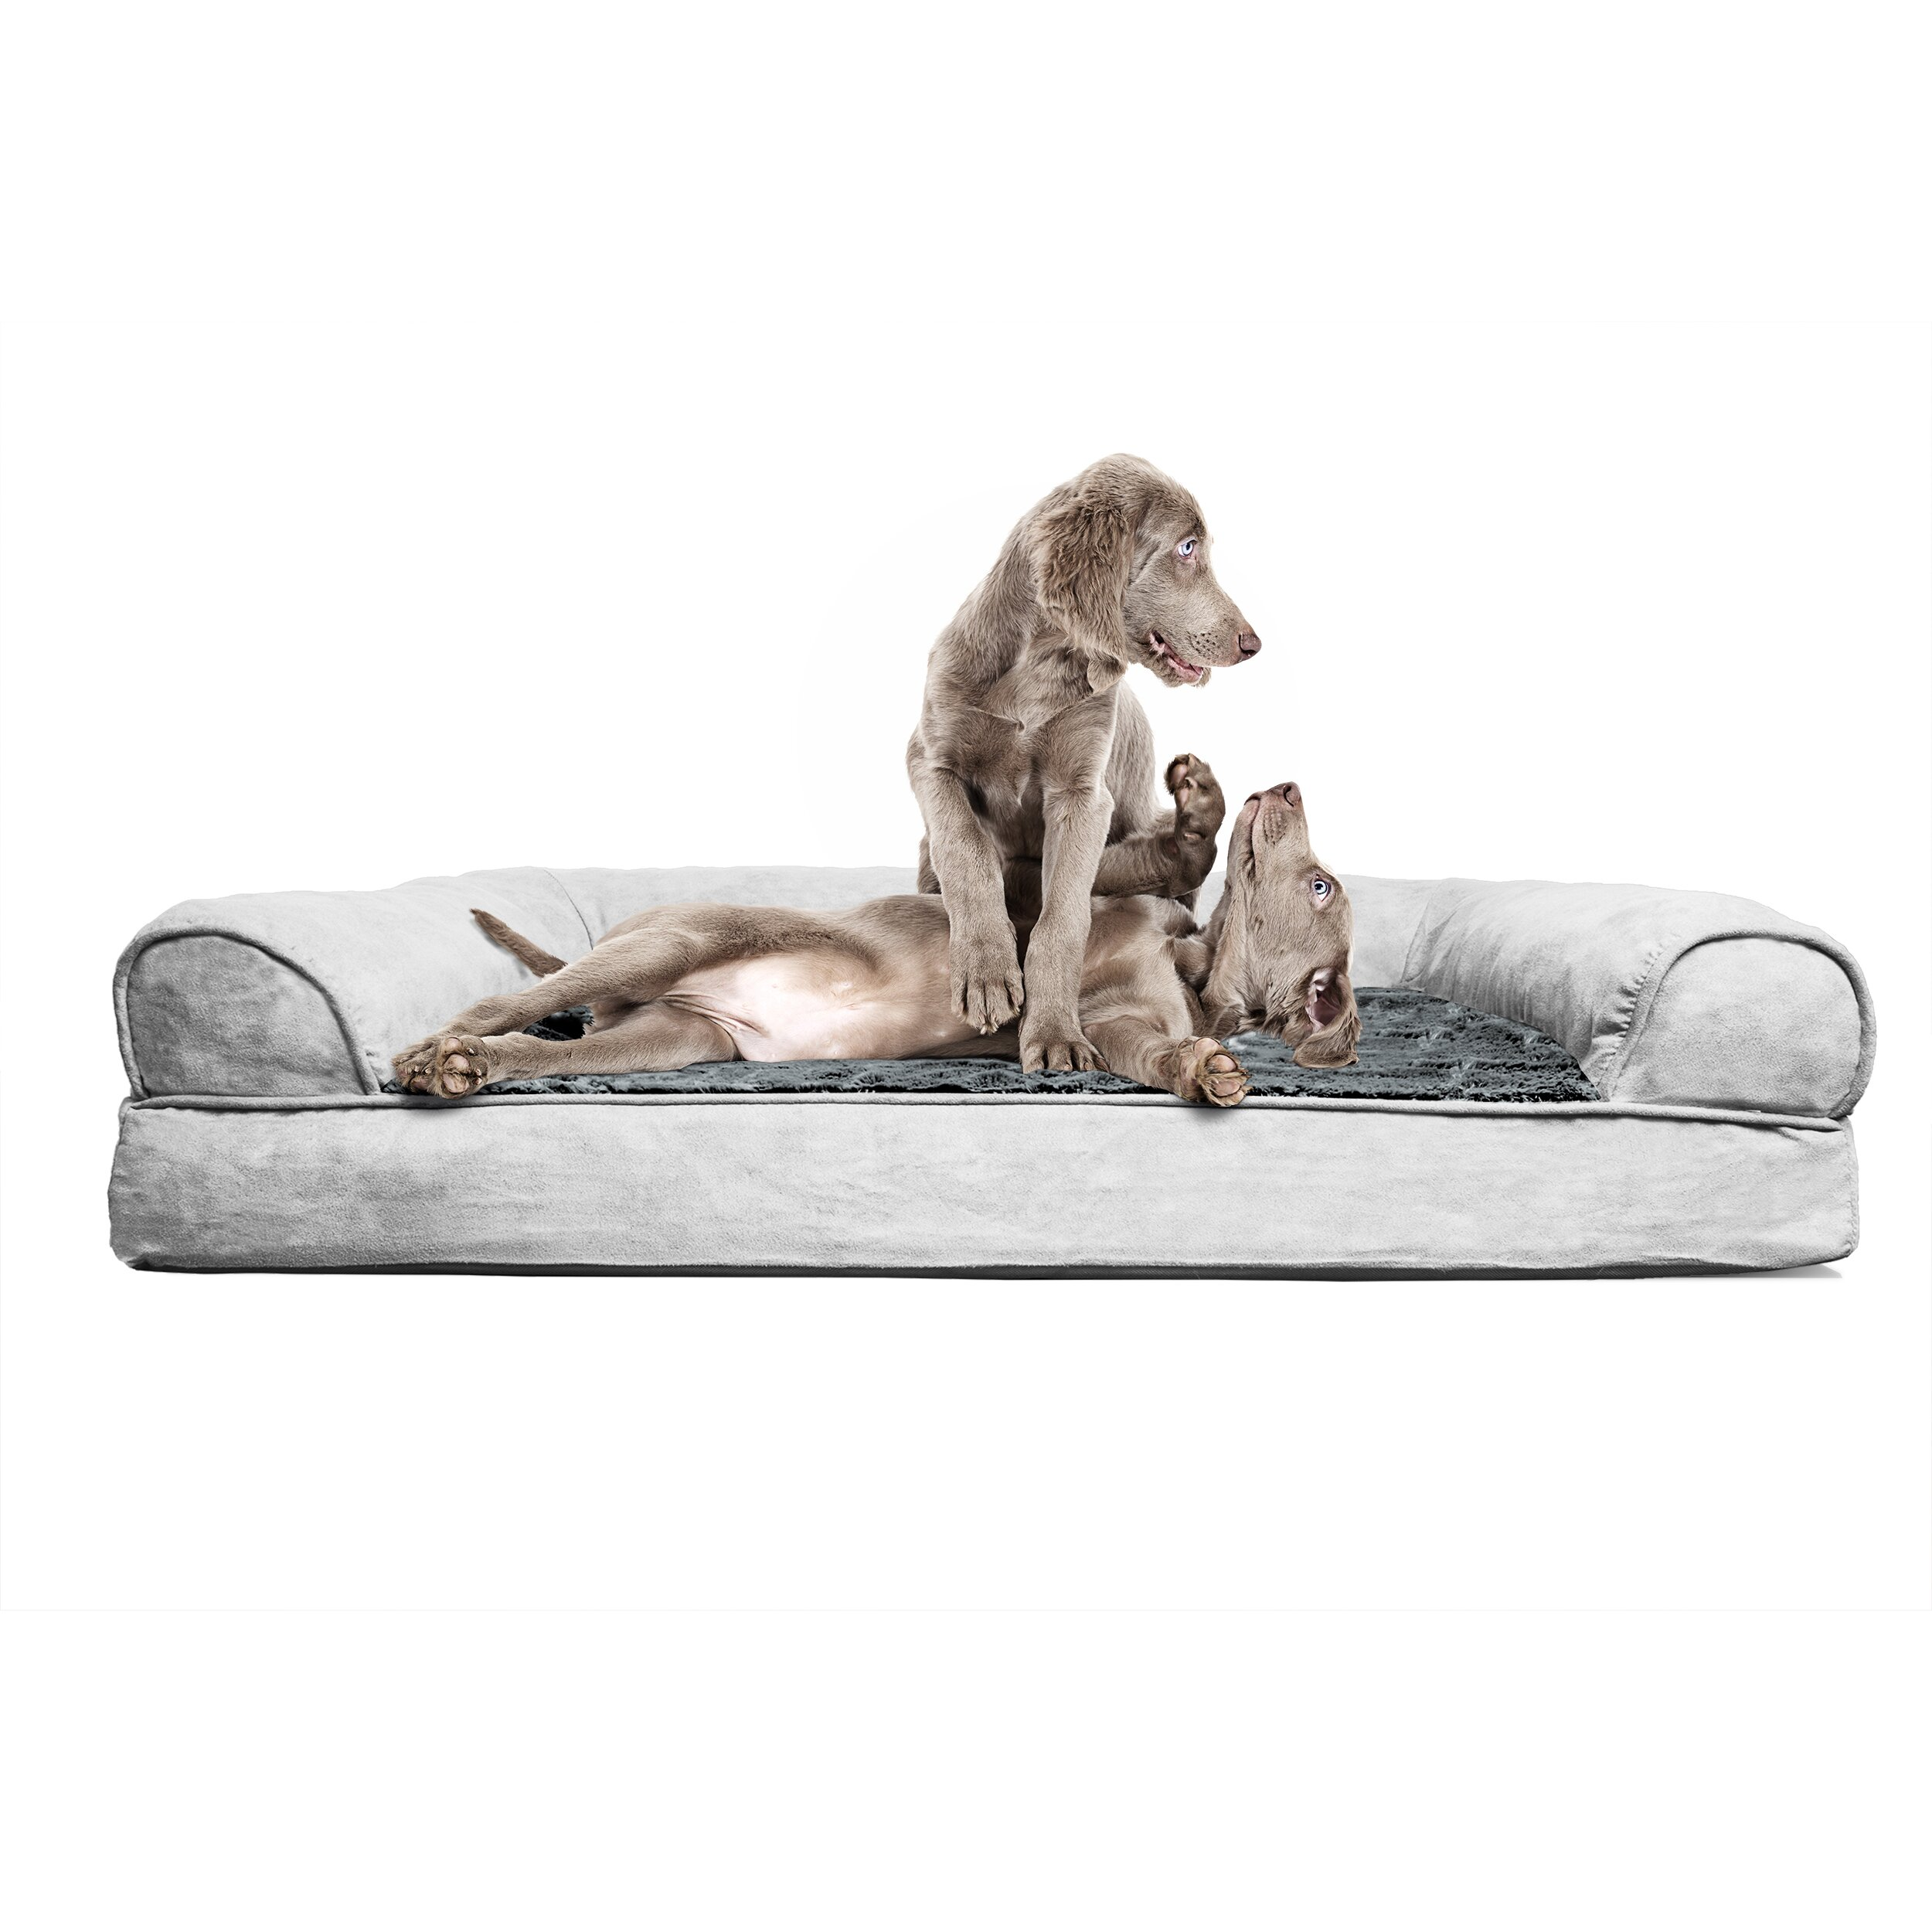 Sofa Style Dog Beds 82 Off On Sofa Style Orthopedic Pet Bed Groupon Goods Thesofa